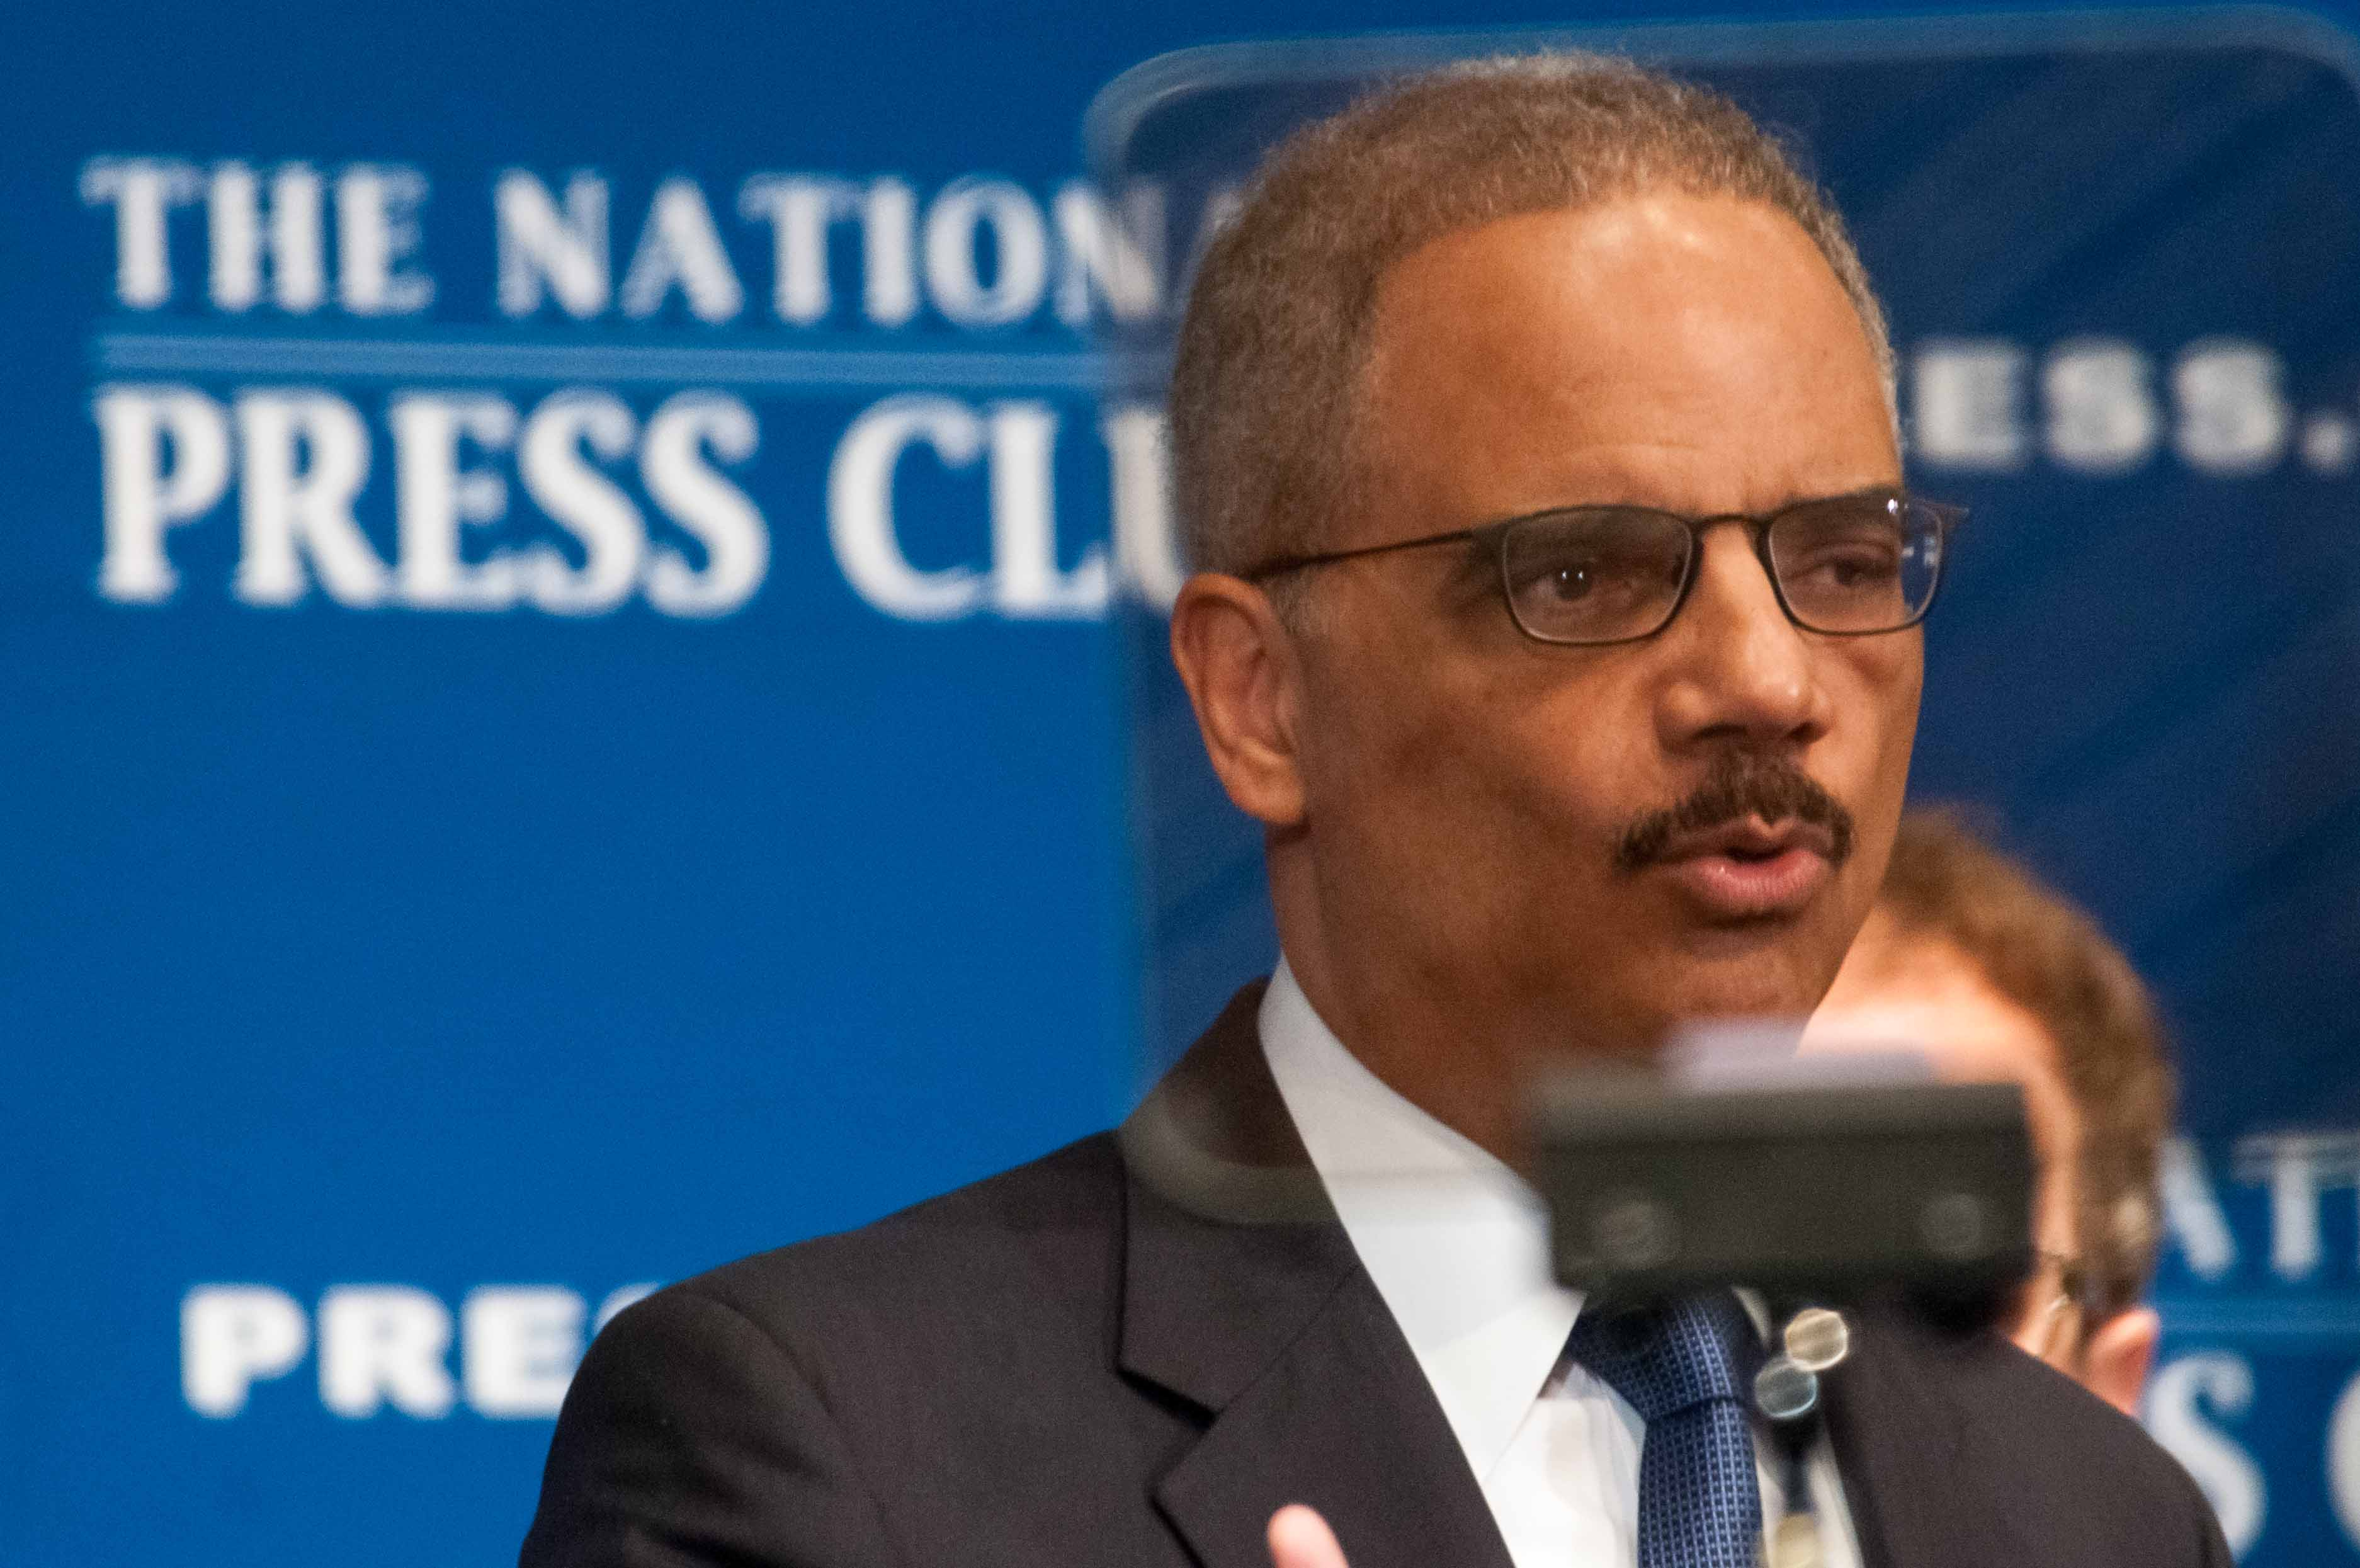 Eric Holder NPC Noel St. John 1 Feb. 17, 2015